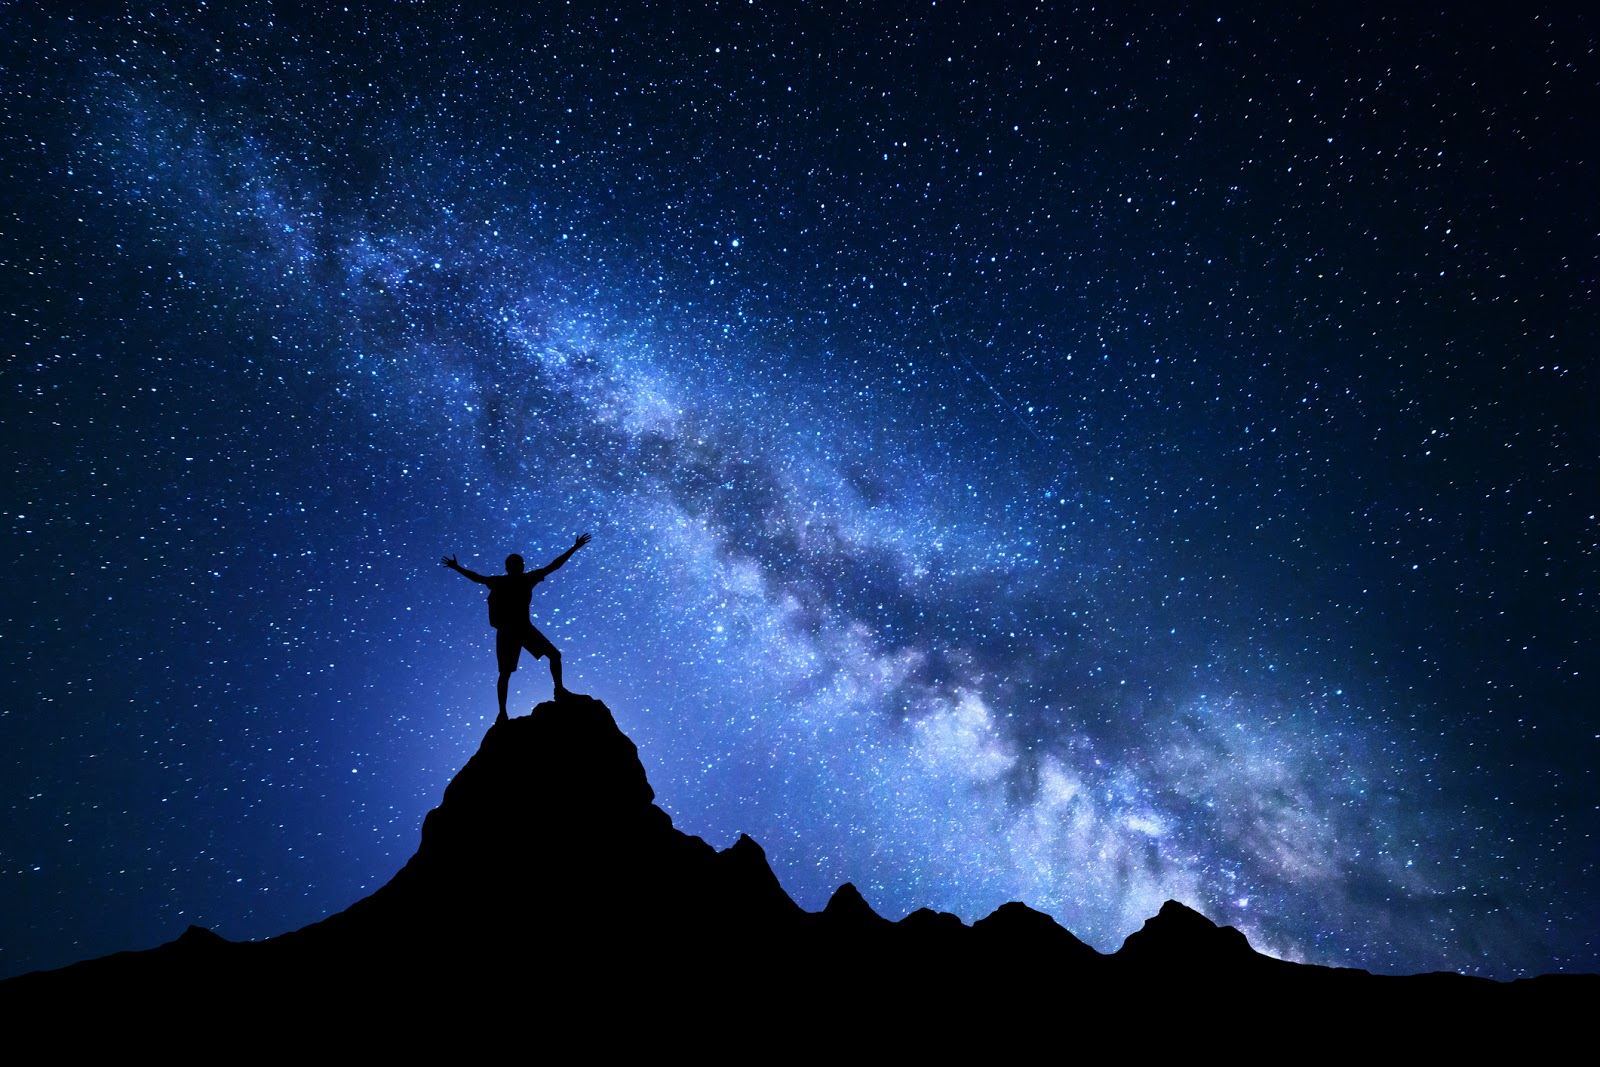 Never stop reaching for the stars.